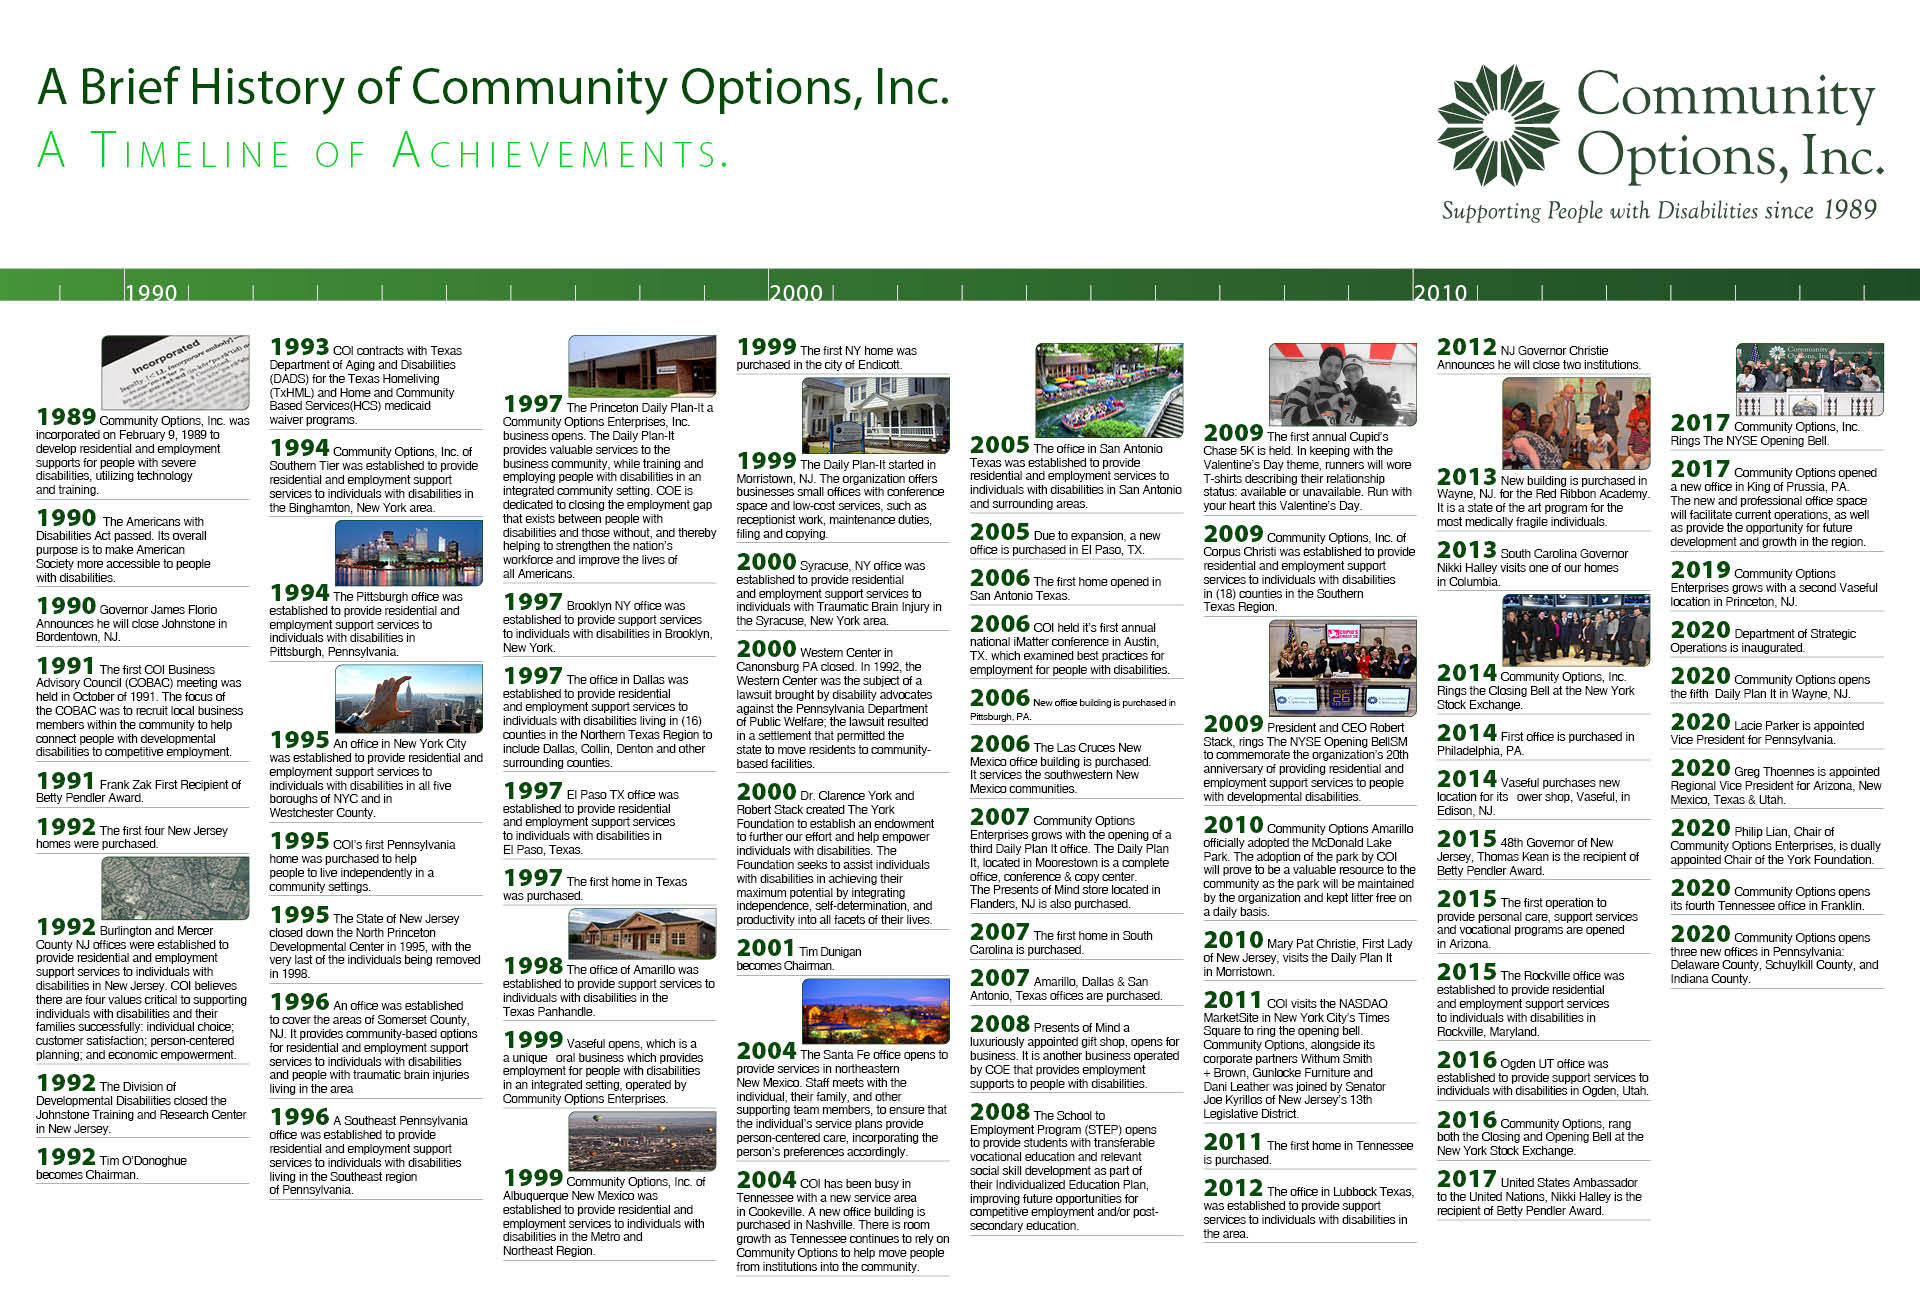 A Brief History of Community Options, Inc. A Timeline of Achievements. Revised August 02, 2021